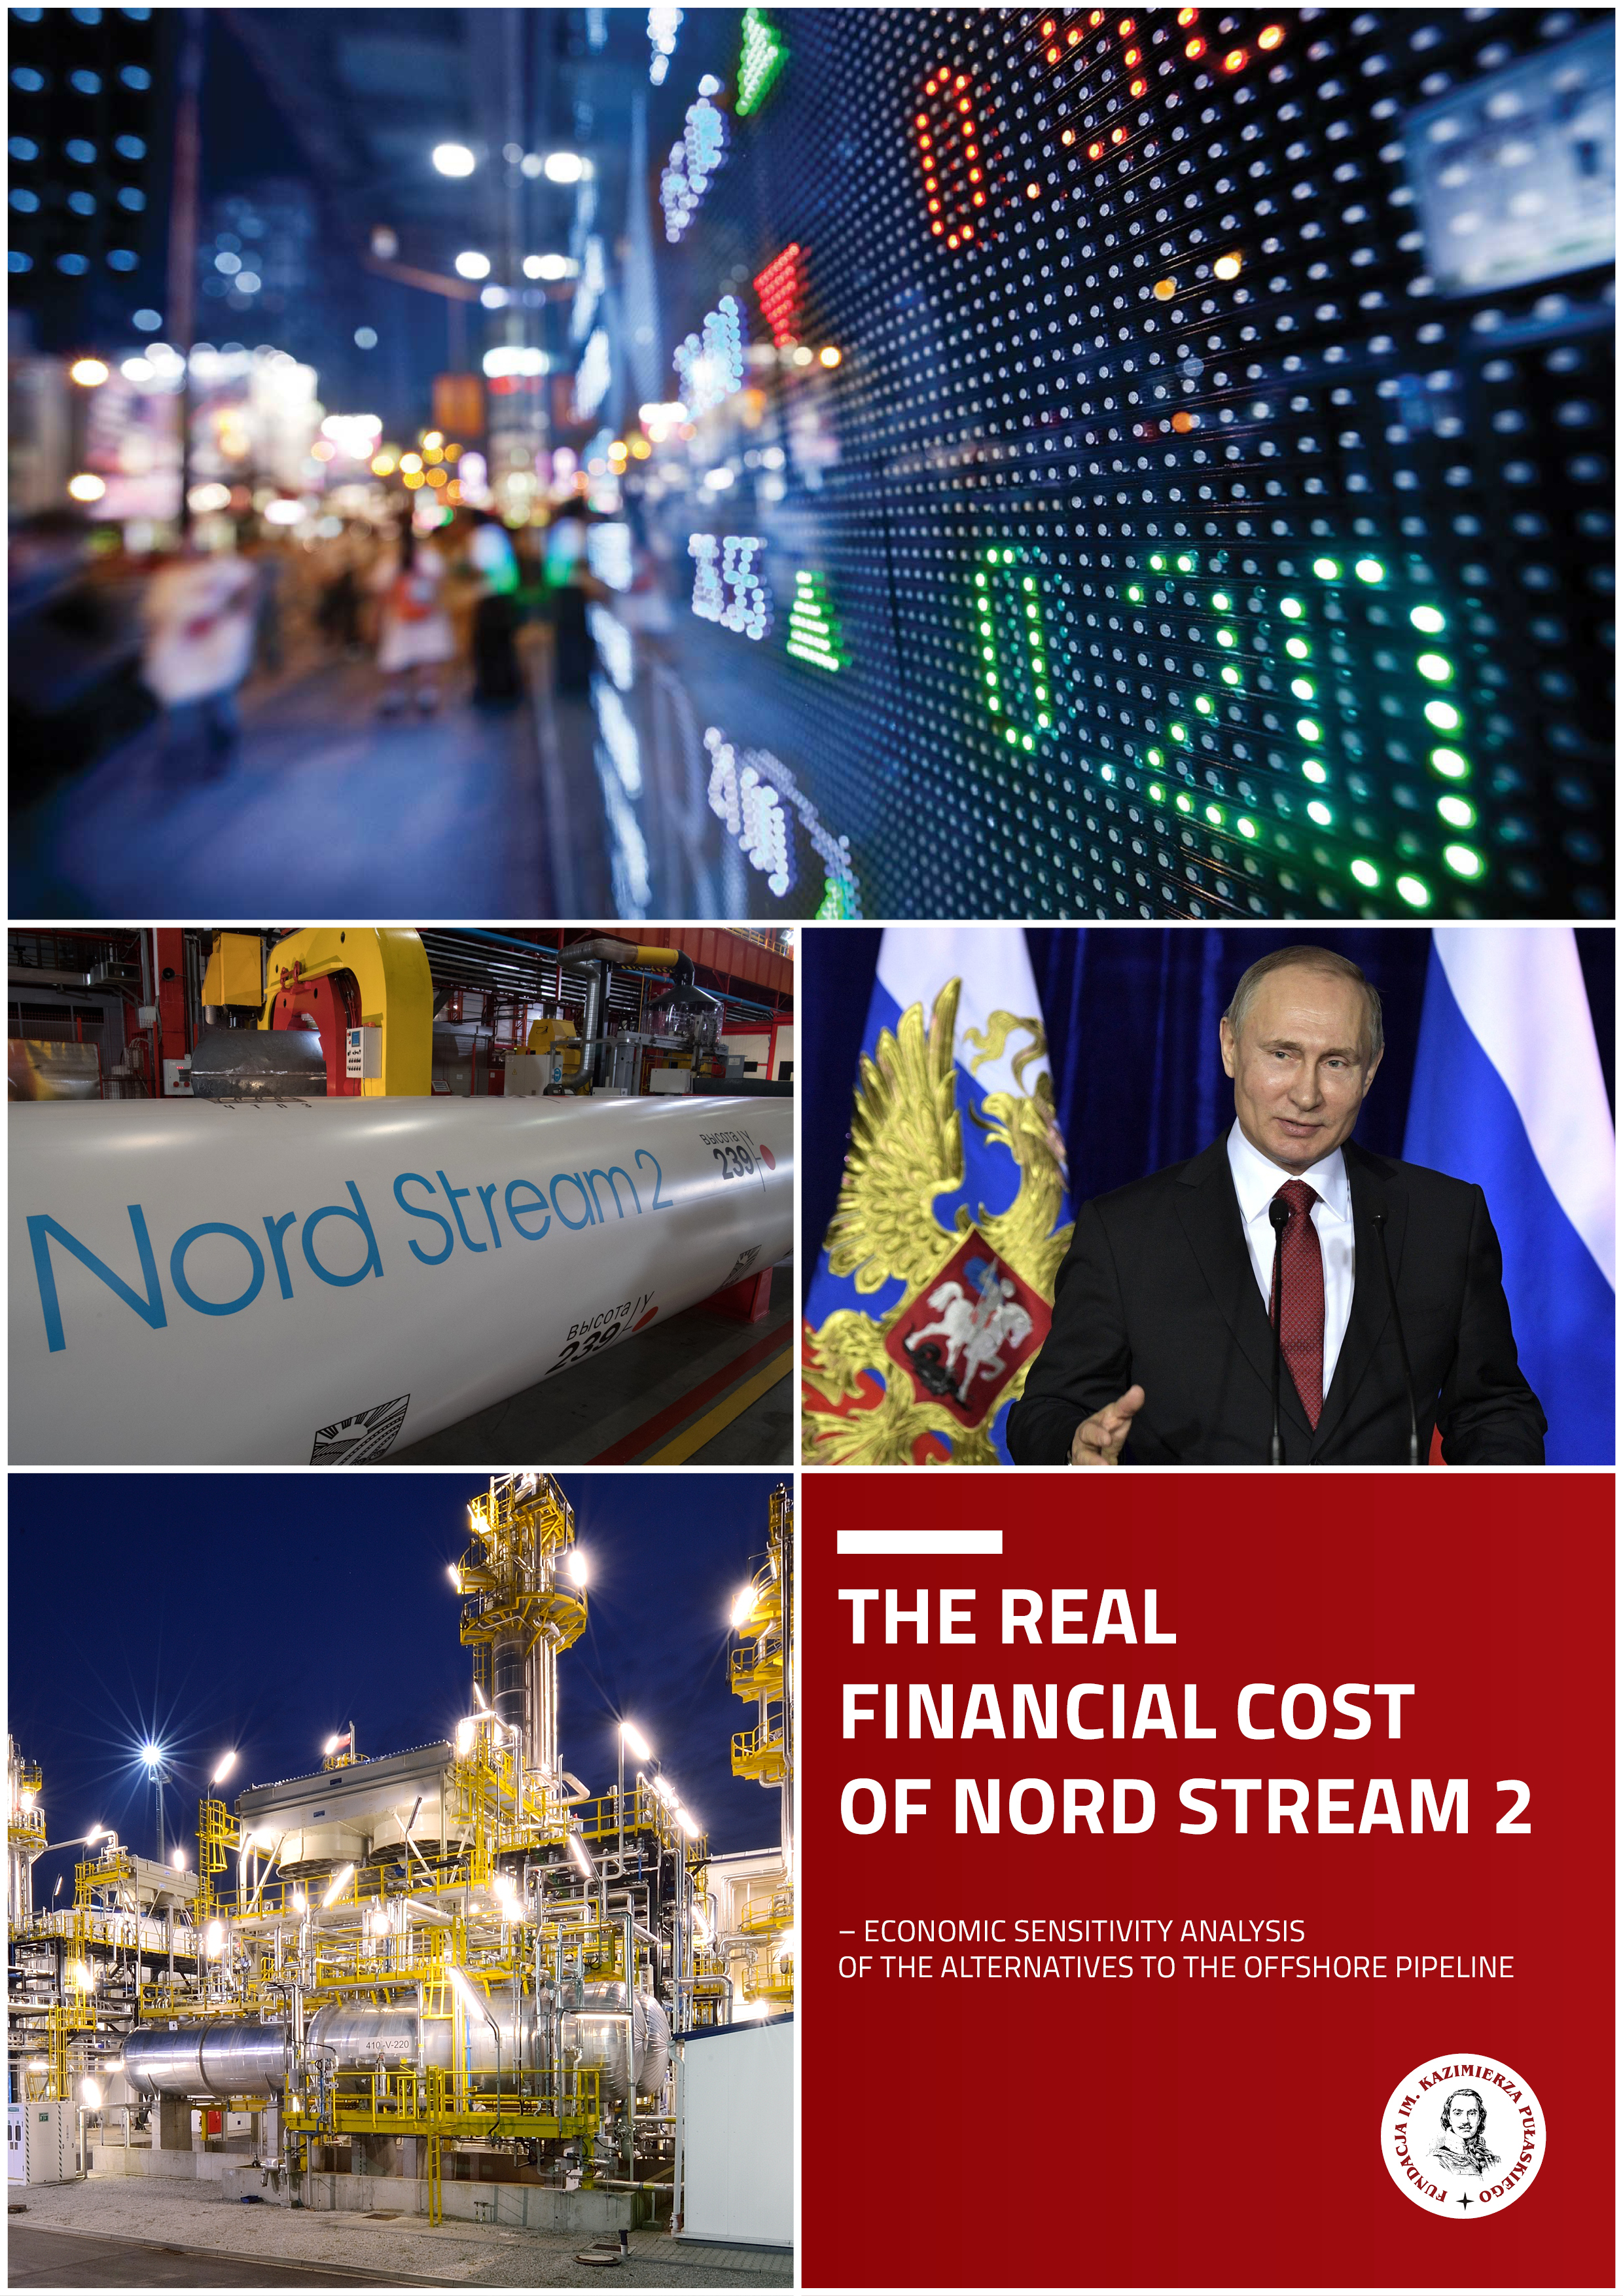 PULASKI REPORT: The Real Financial Cost of Nord Stream 2  – Economic Sensitivity Analysis of the Alternatives to the Offshore Pipeline